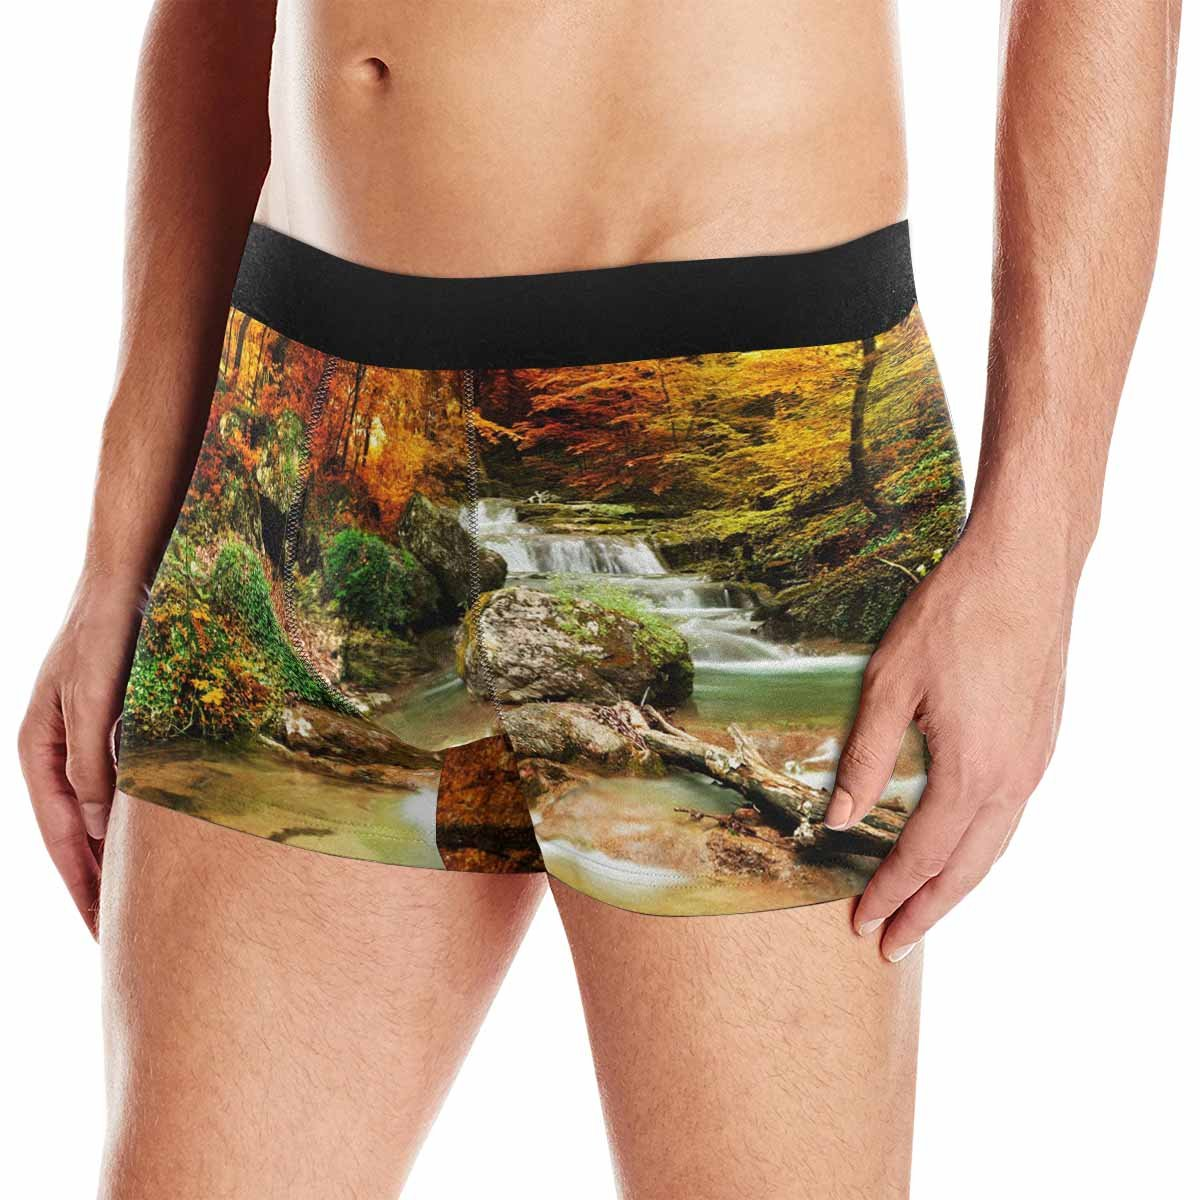 INTERESTPRINT Boxer Briefs Mens Underwear Autumn Creek Woods with Yellow Trees Foliage and Rocks in Forest Mountain XS-3XL